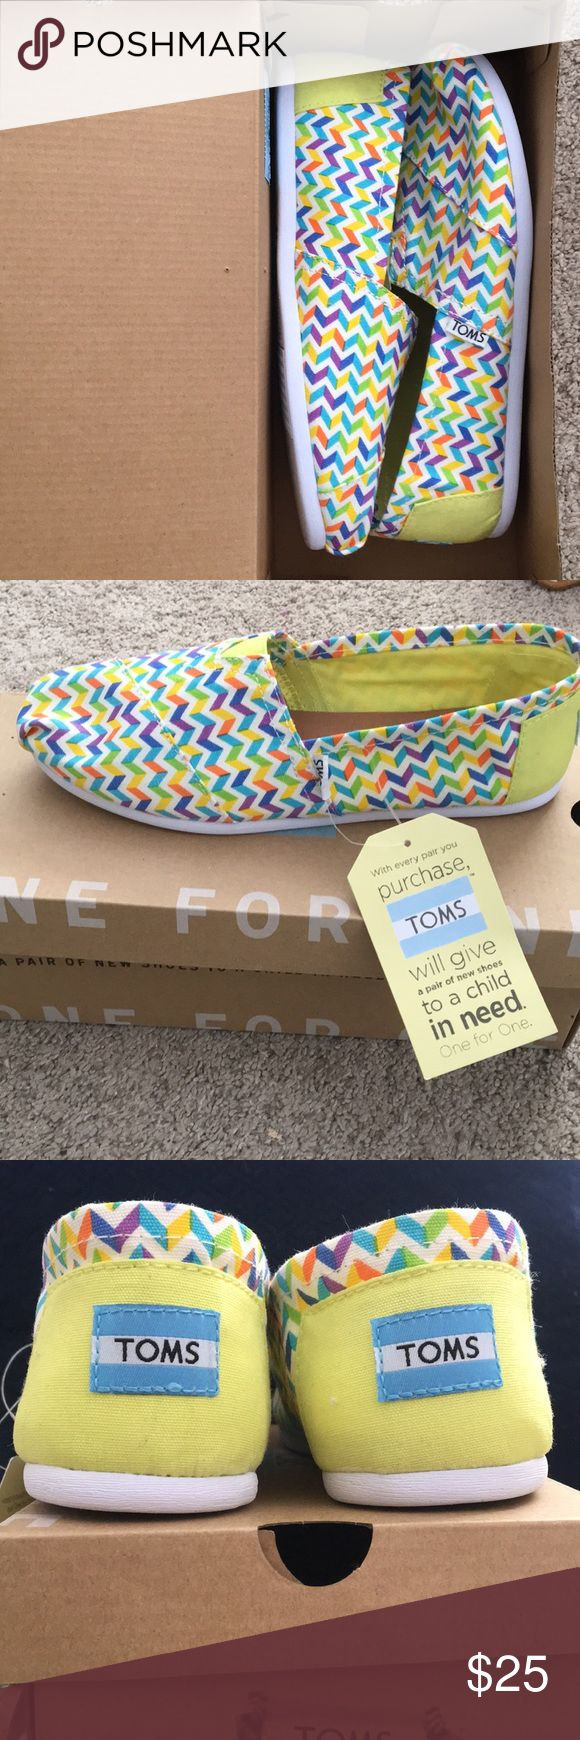 Brand New Toms Shoes Women's classic multi canvas chevron toms. Size 8. Never worn! Tag still on!  Super cute! Toms Shoes Flats & Loafers